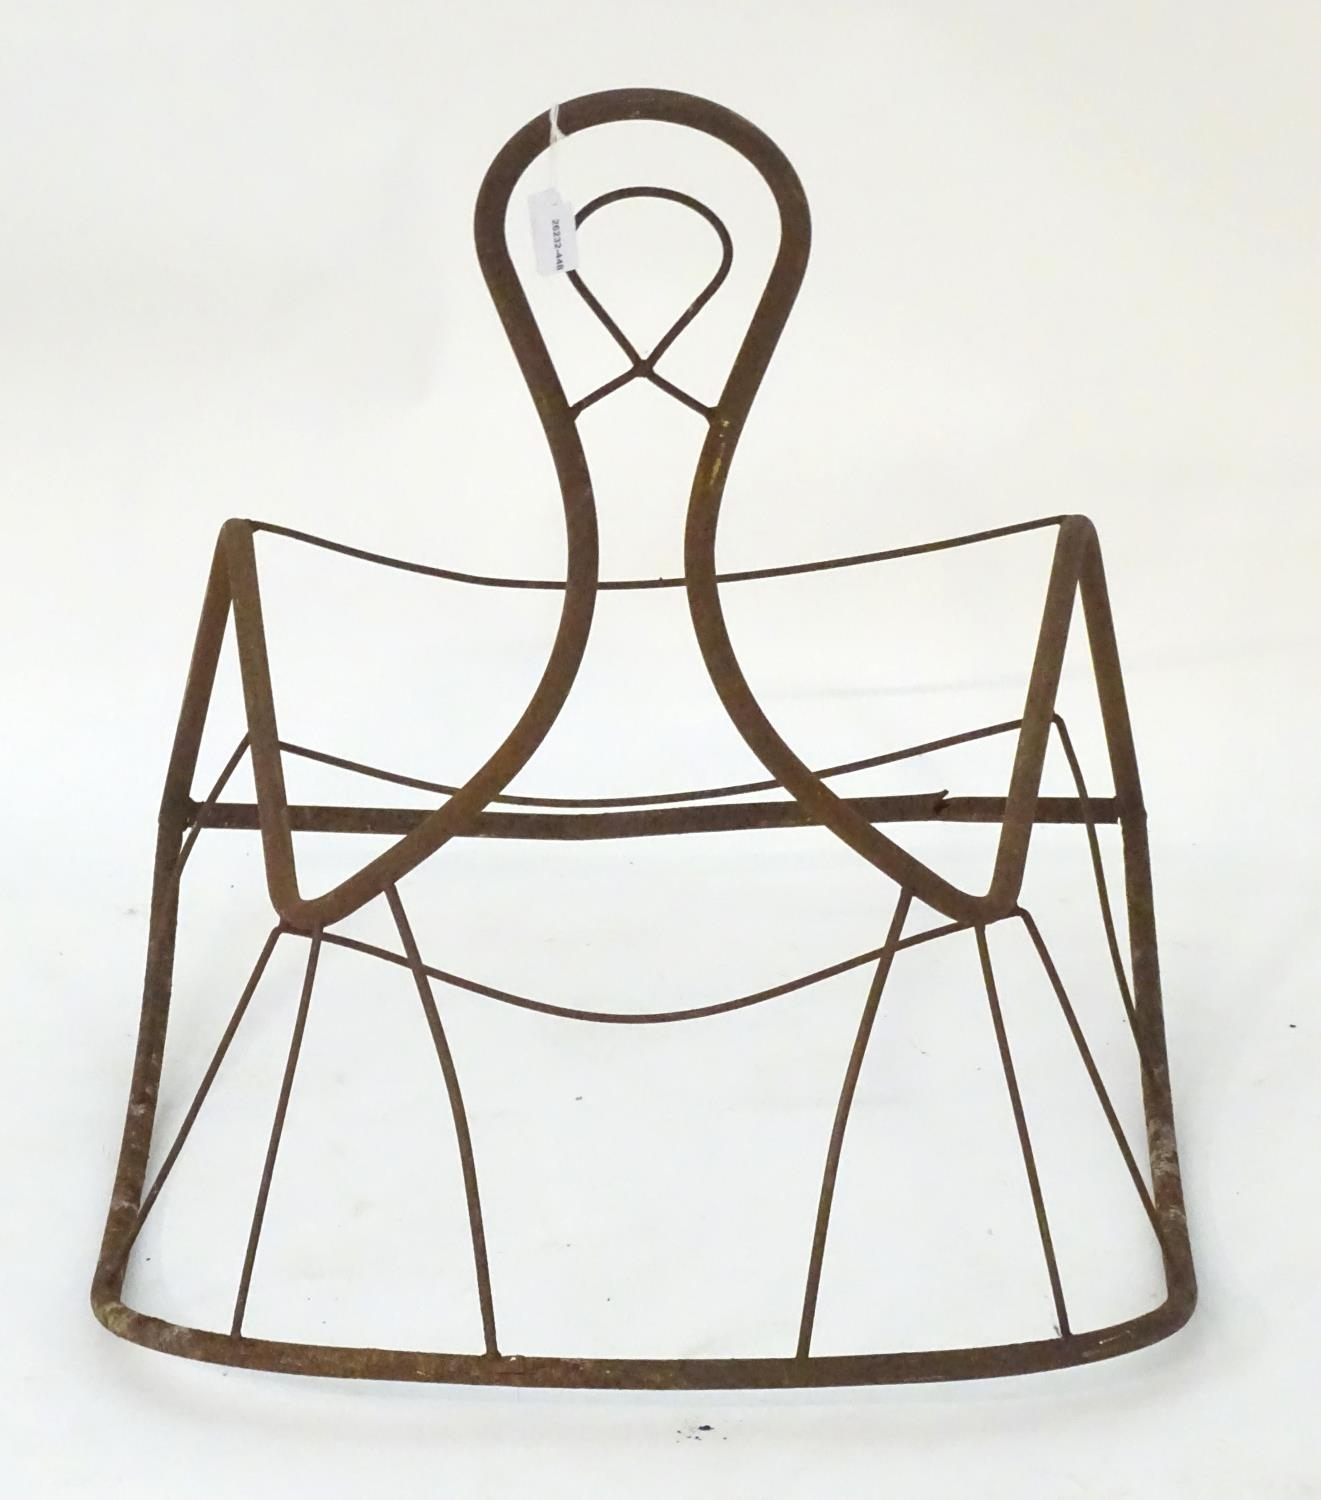 Garden & Architectural, Salvage: a mid-20thC metal rocking chair frame, suitable for use as a - Image 3 of 6